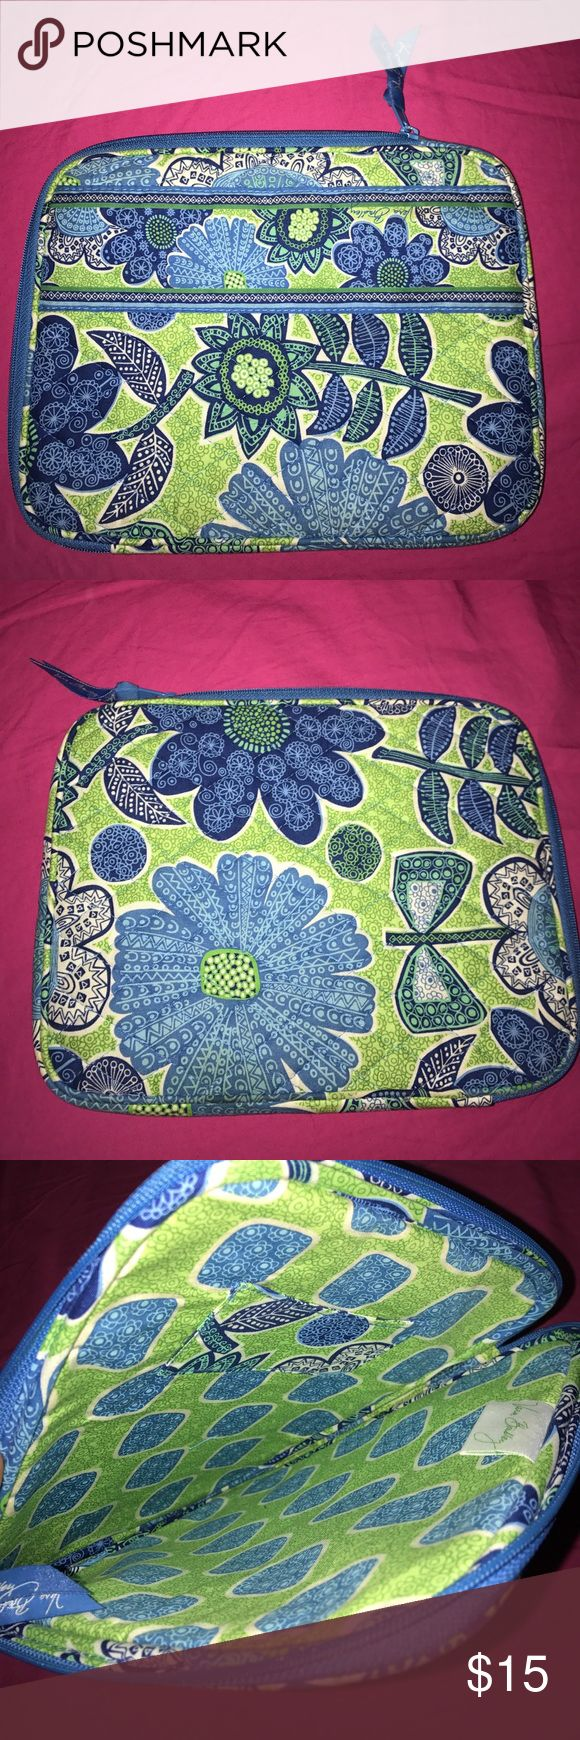 Vera Bradley Tablet Case! This is a Vera Bradley tablet case. It is in perfect condition. It has never been used before. It has a pocket inside. As you can see in the photos, it has a lovely pattern all over it. #vera #bradley #verabradley Vera Bradley Accessories Tablet Cases